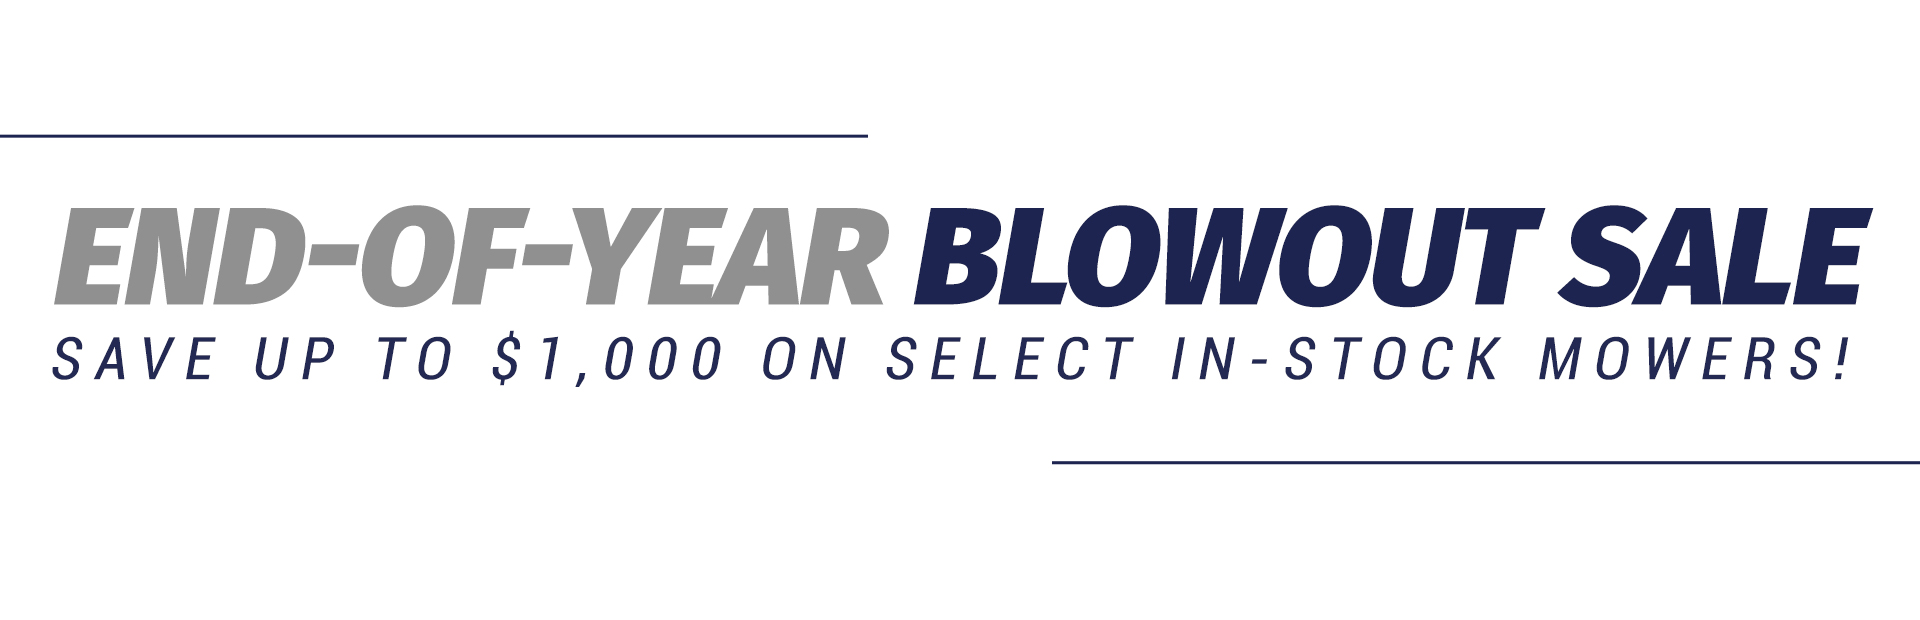 End-of-Year Blowout Sale: Save up to $1,000 on select in-stock mowers!